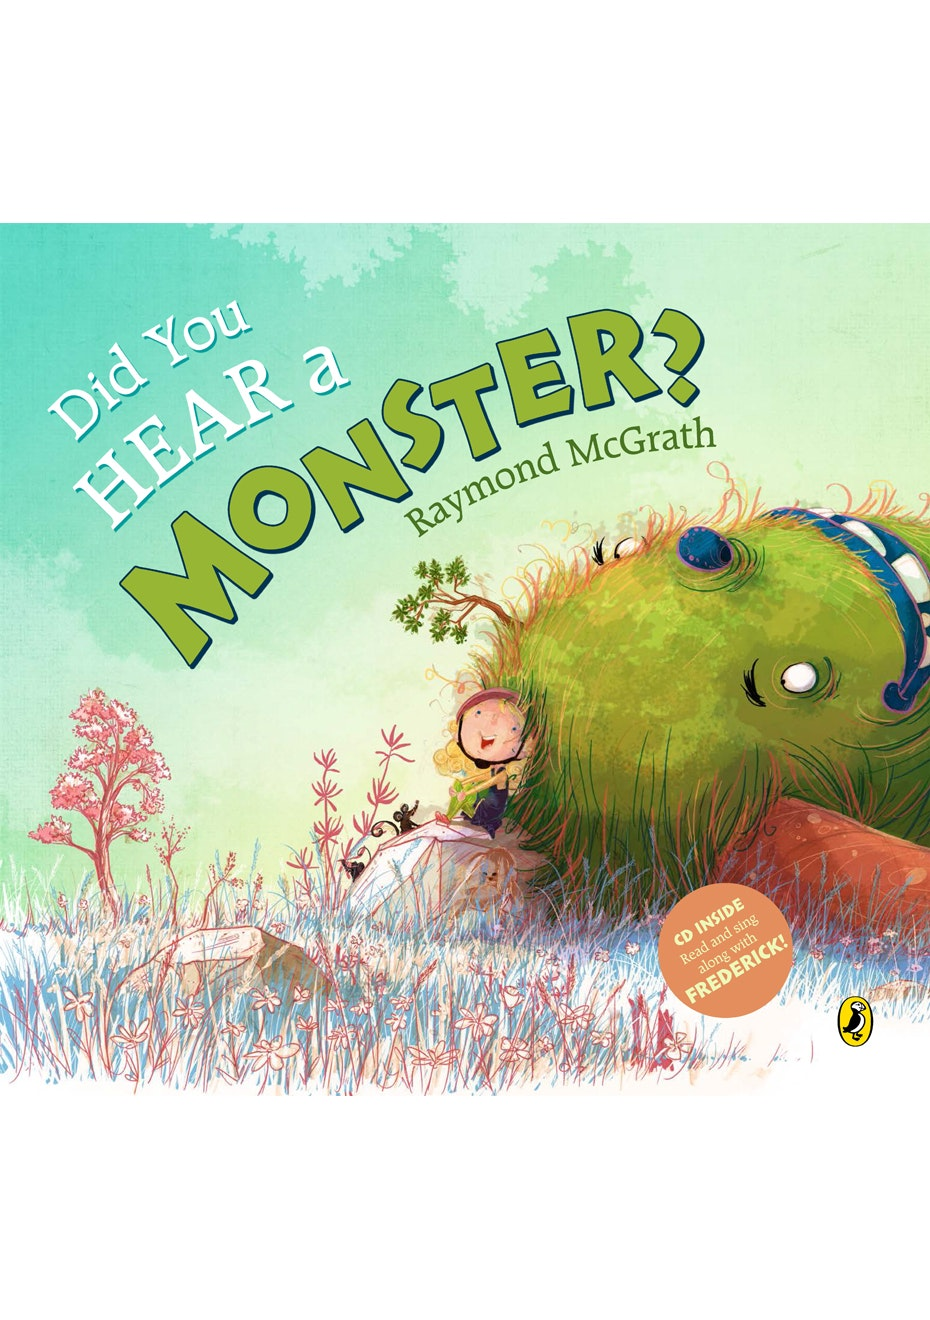 Did You Hear a Monster?, By Raymond McGrath